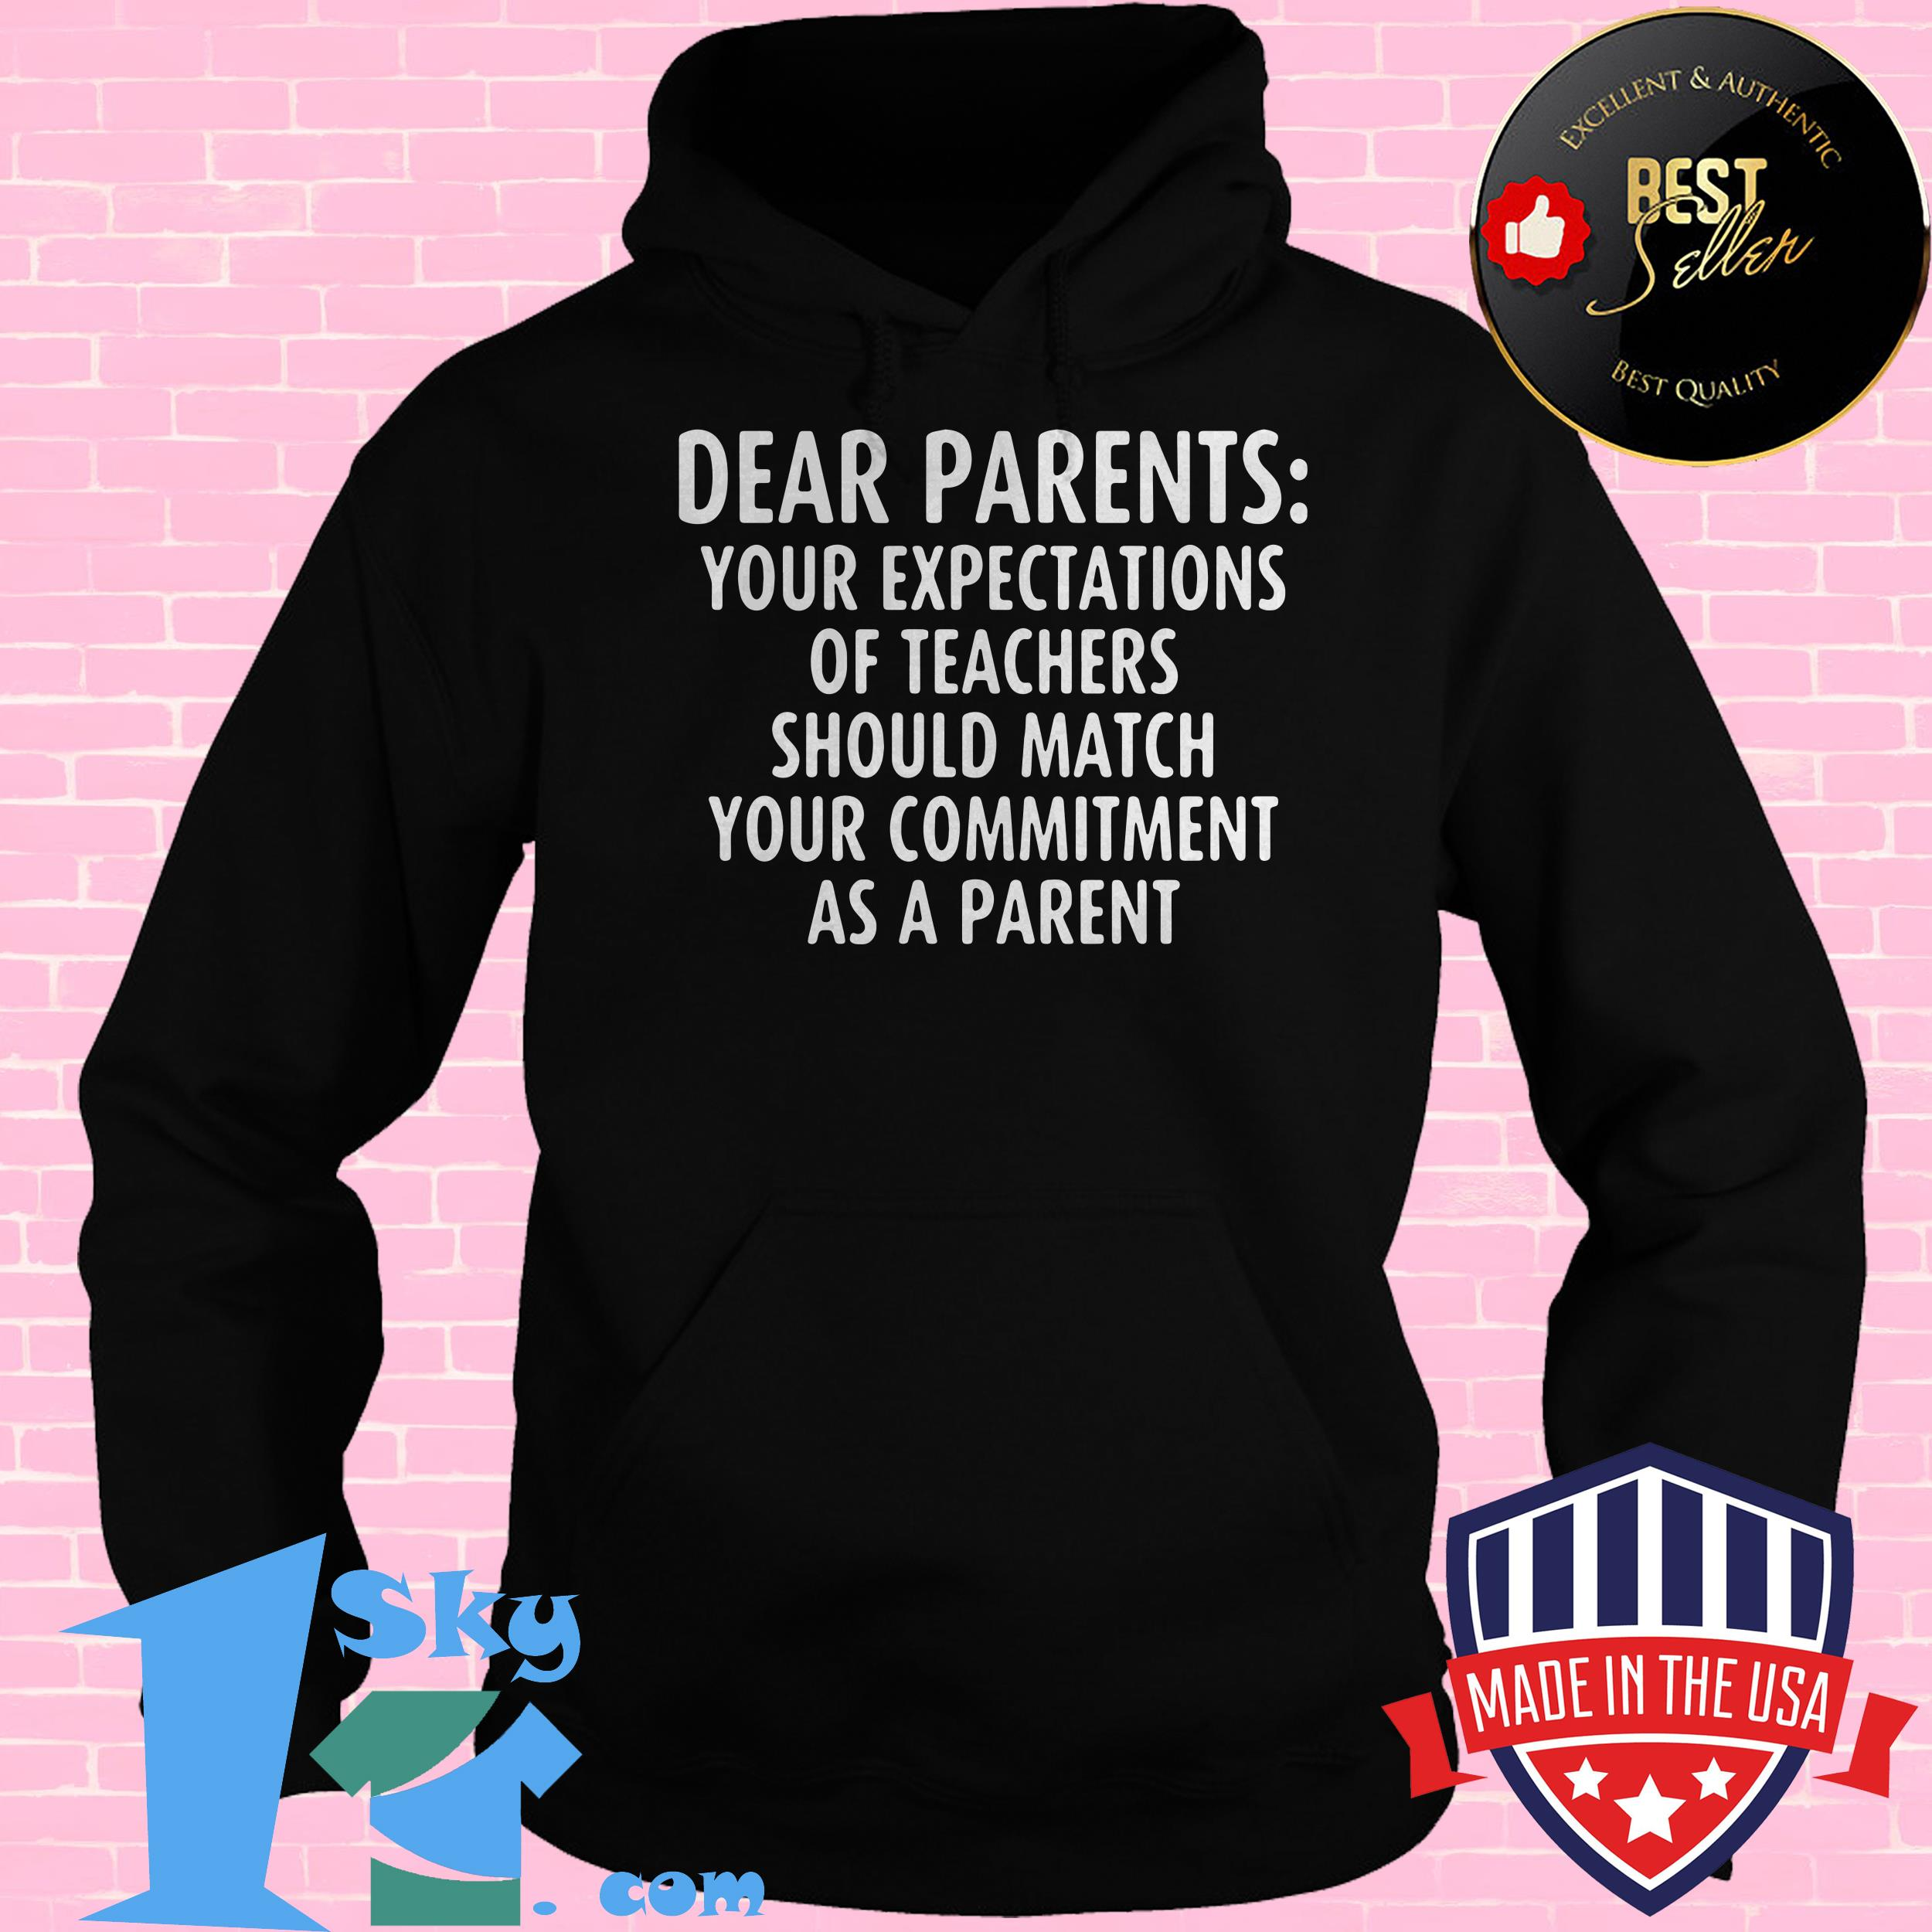 dear parents your expectations of teachers should match your commitment as a parent hoodie - Dear Parents Your Expectations Of Teachers Should Match Your Commitment As A Parent shirt